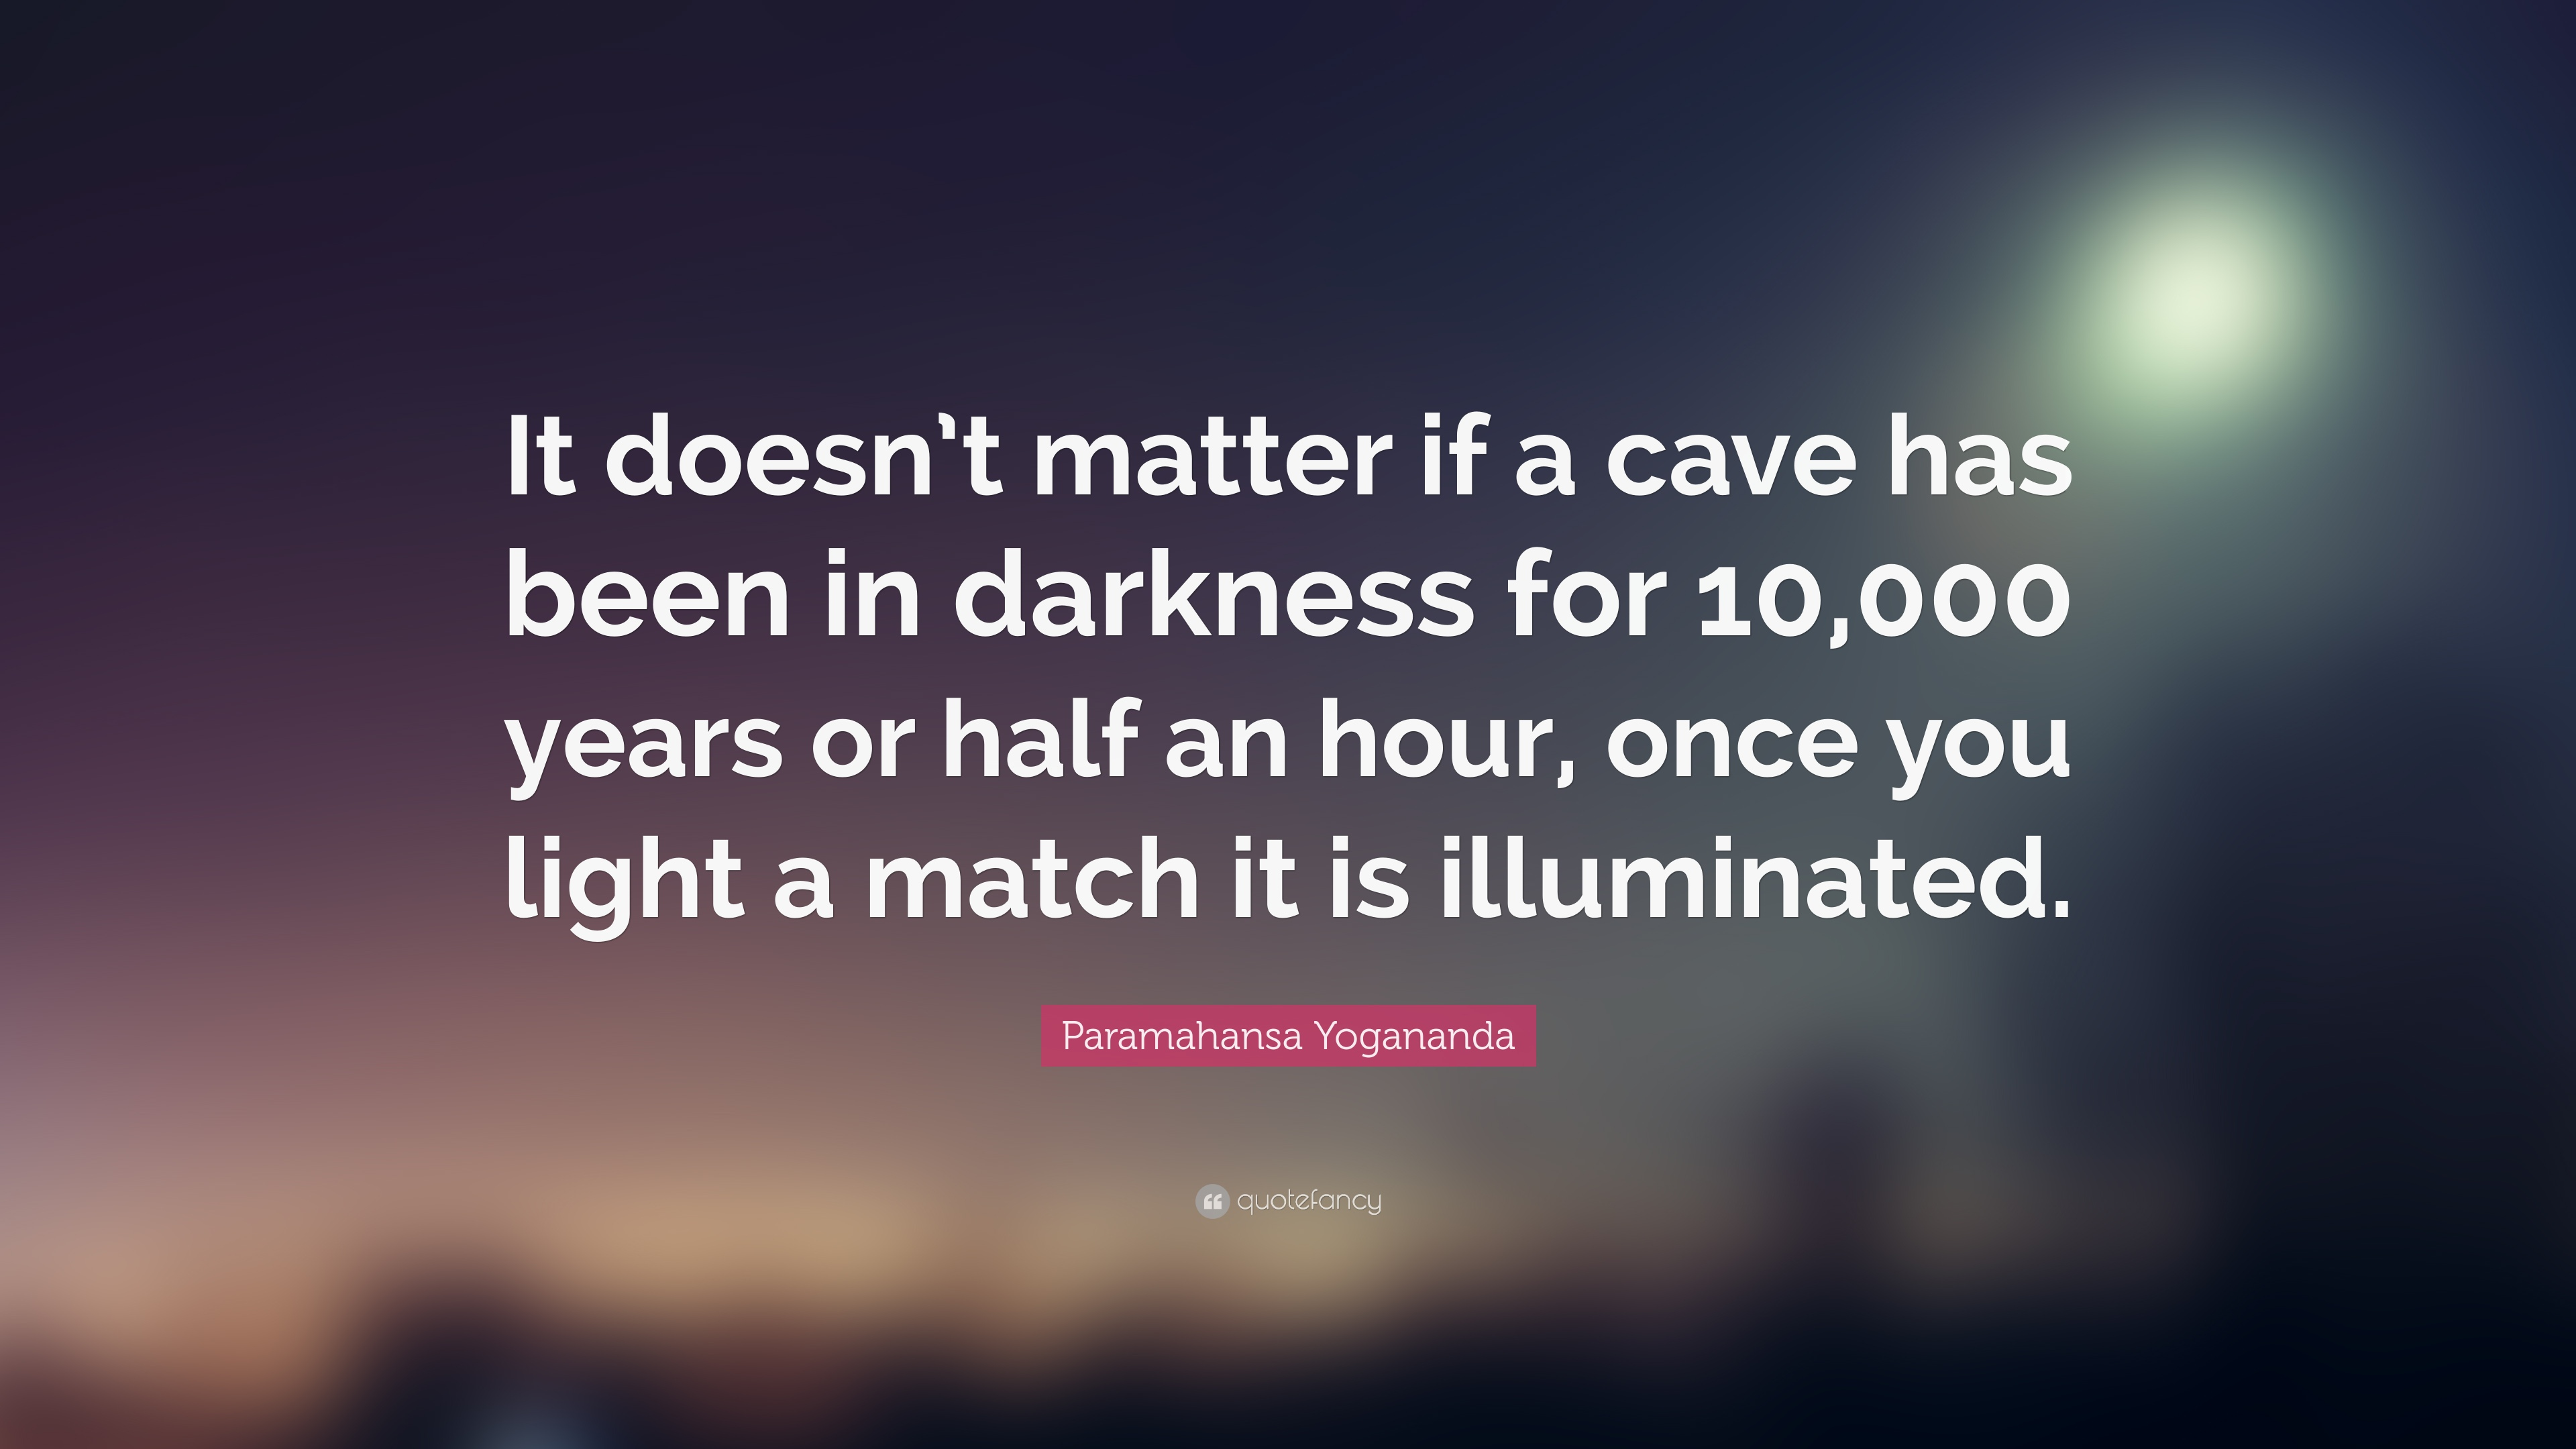 Paramahansa Yogananda Quote It Doesn T Matter If A Cave Has Been In Darkness For 10 000 Years